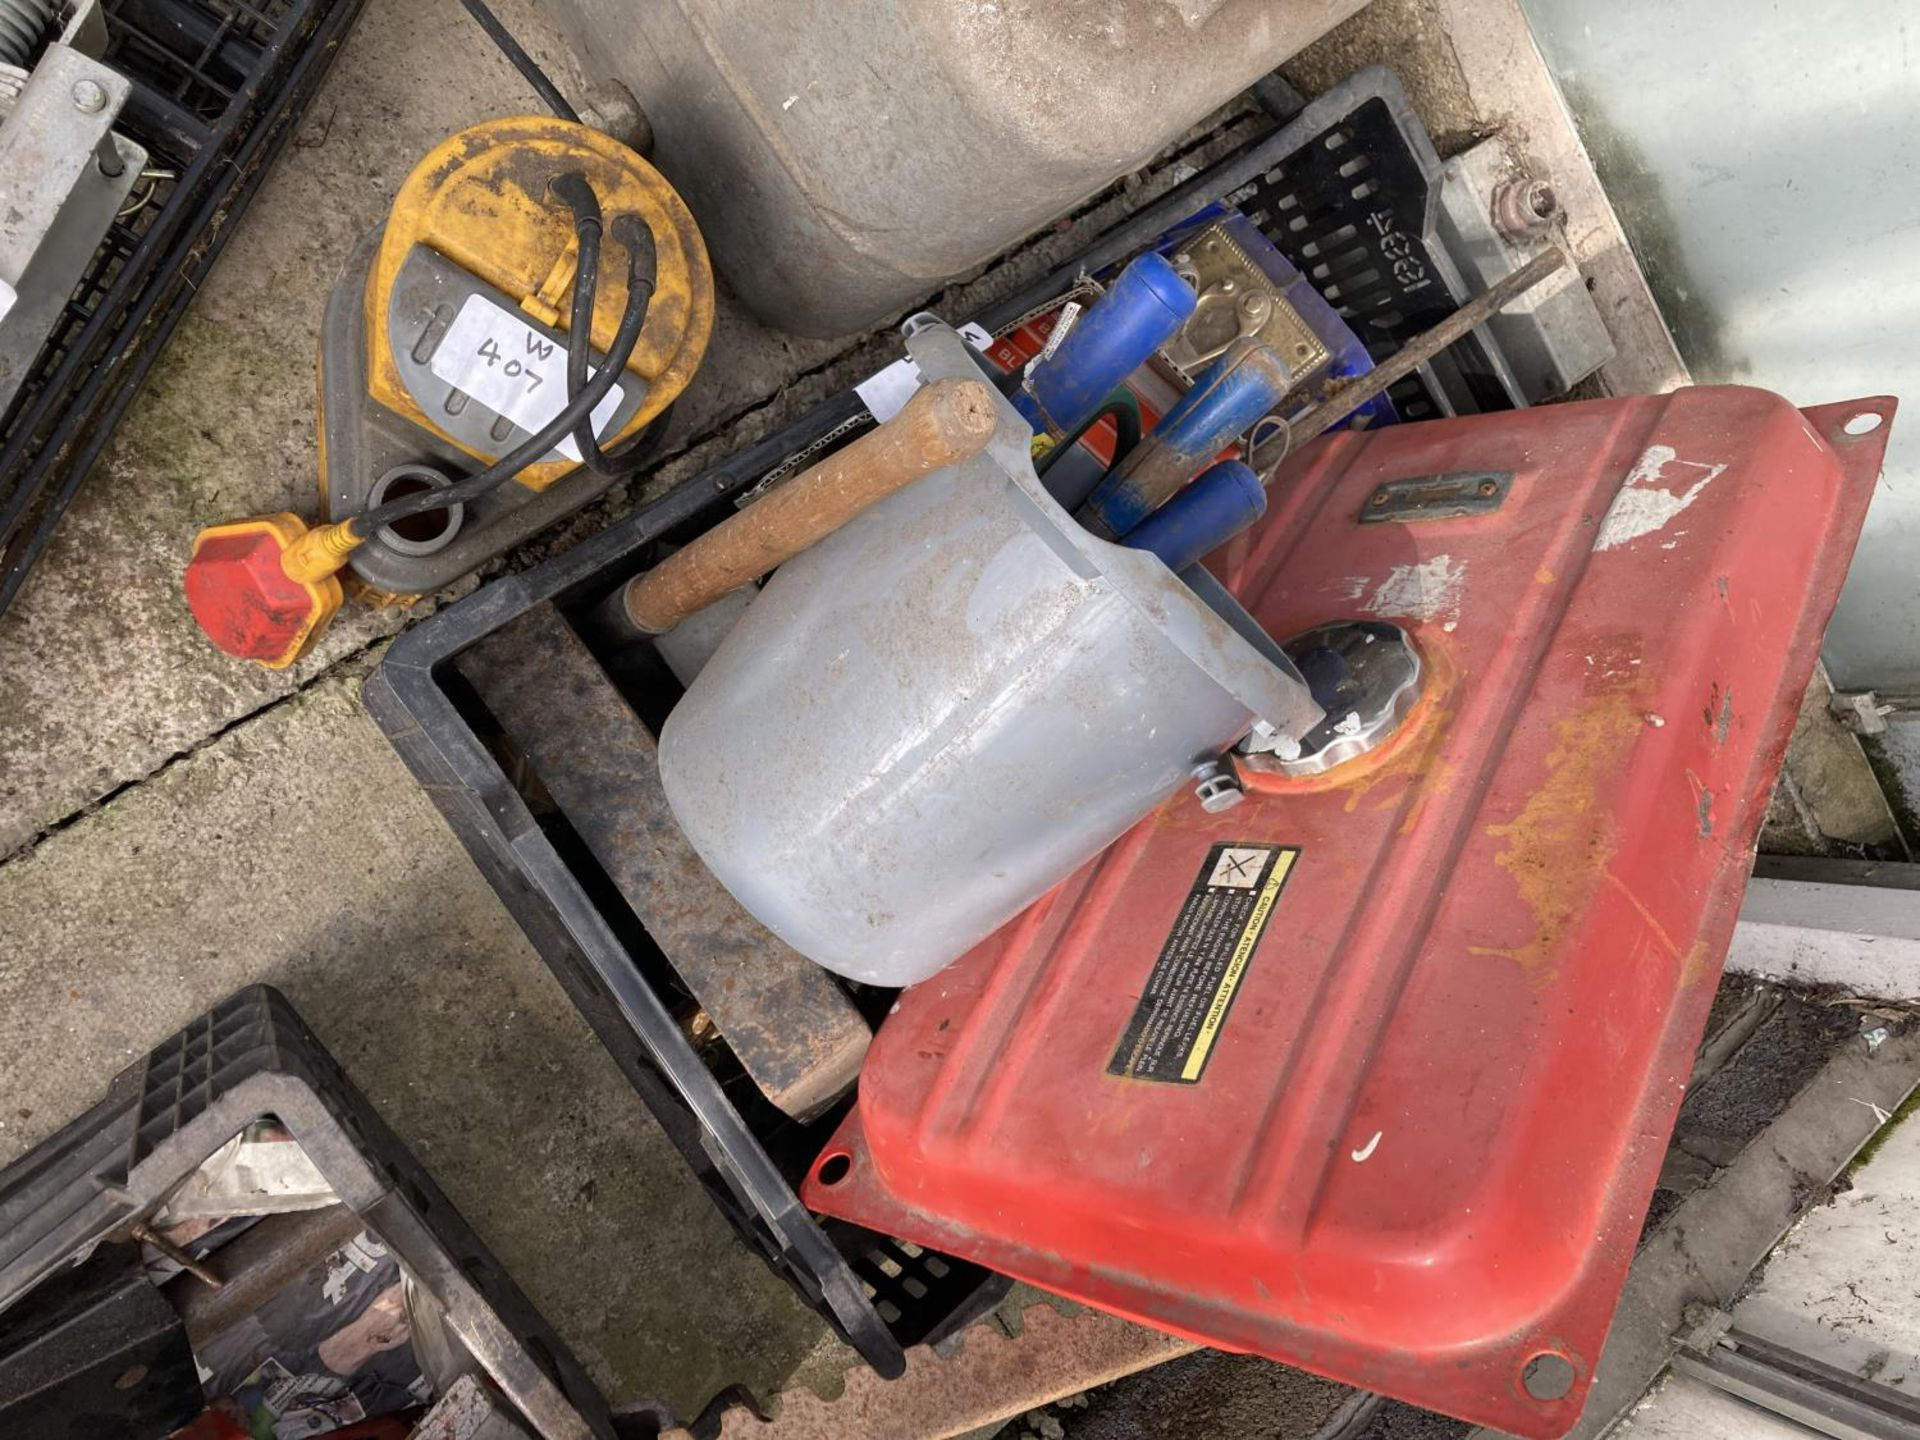 A CAMERON DELUXE PRESSURE TANK, THREE BOXES CONTAINING CHAINS, TOOLS, TANKS ETC, MESH GUARDS AND A - Image 3 of 4